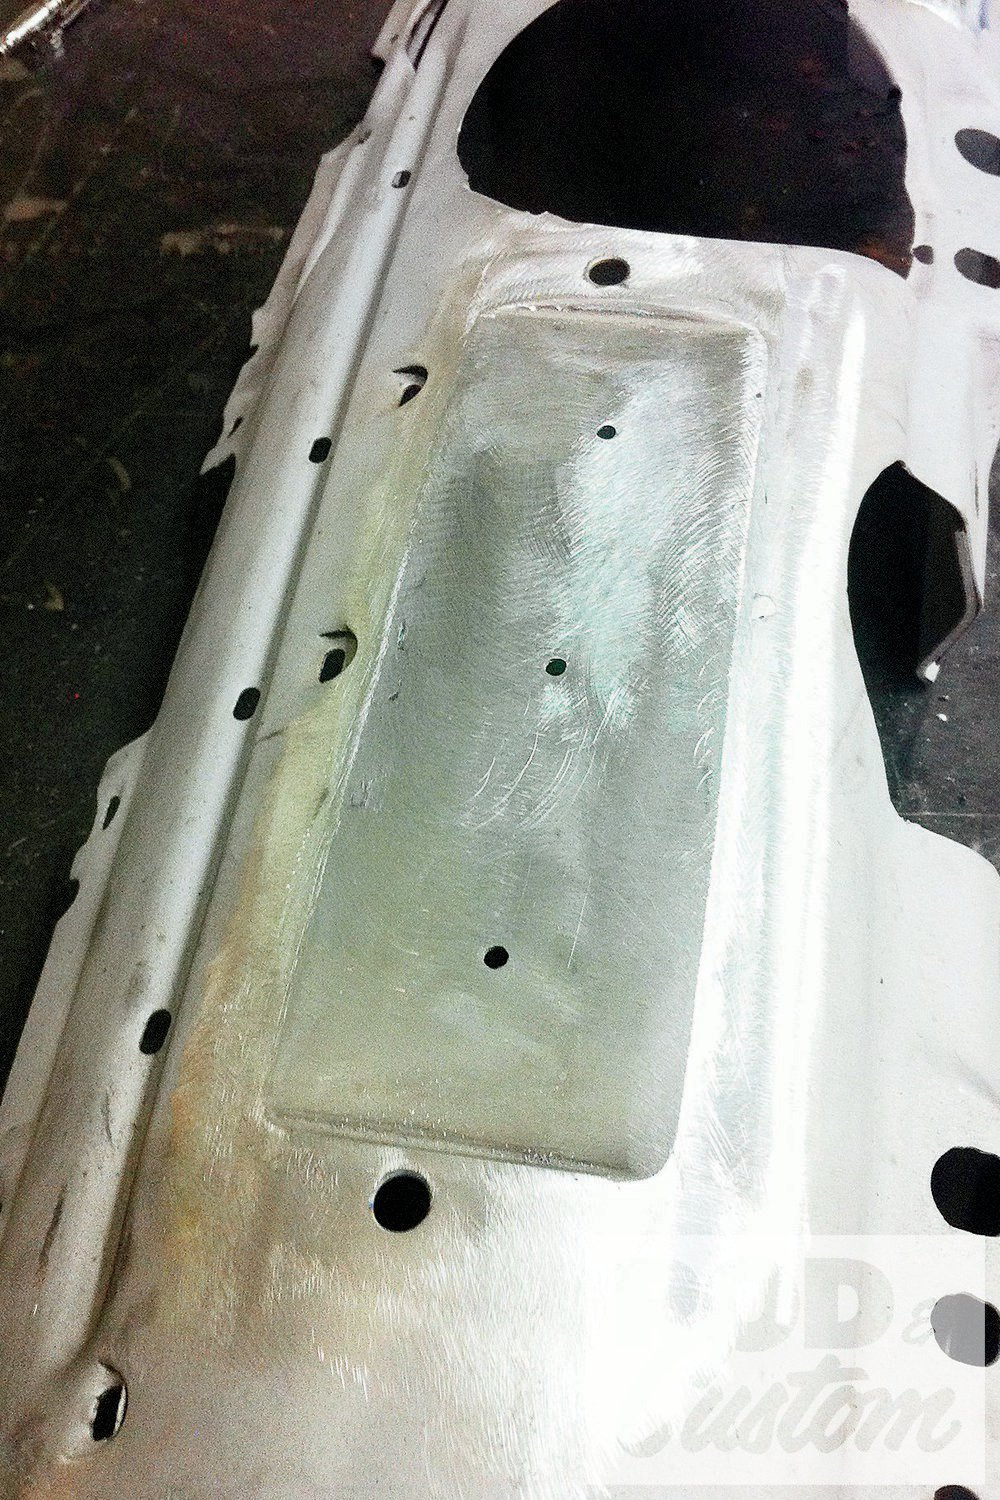 This flat section was welded in place with pilot holes drilled for the center of the gauges, as it's easier to lay out and drill these first.